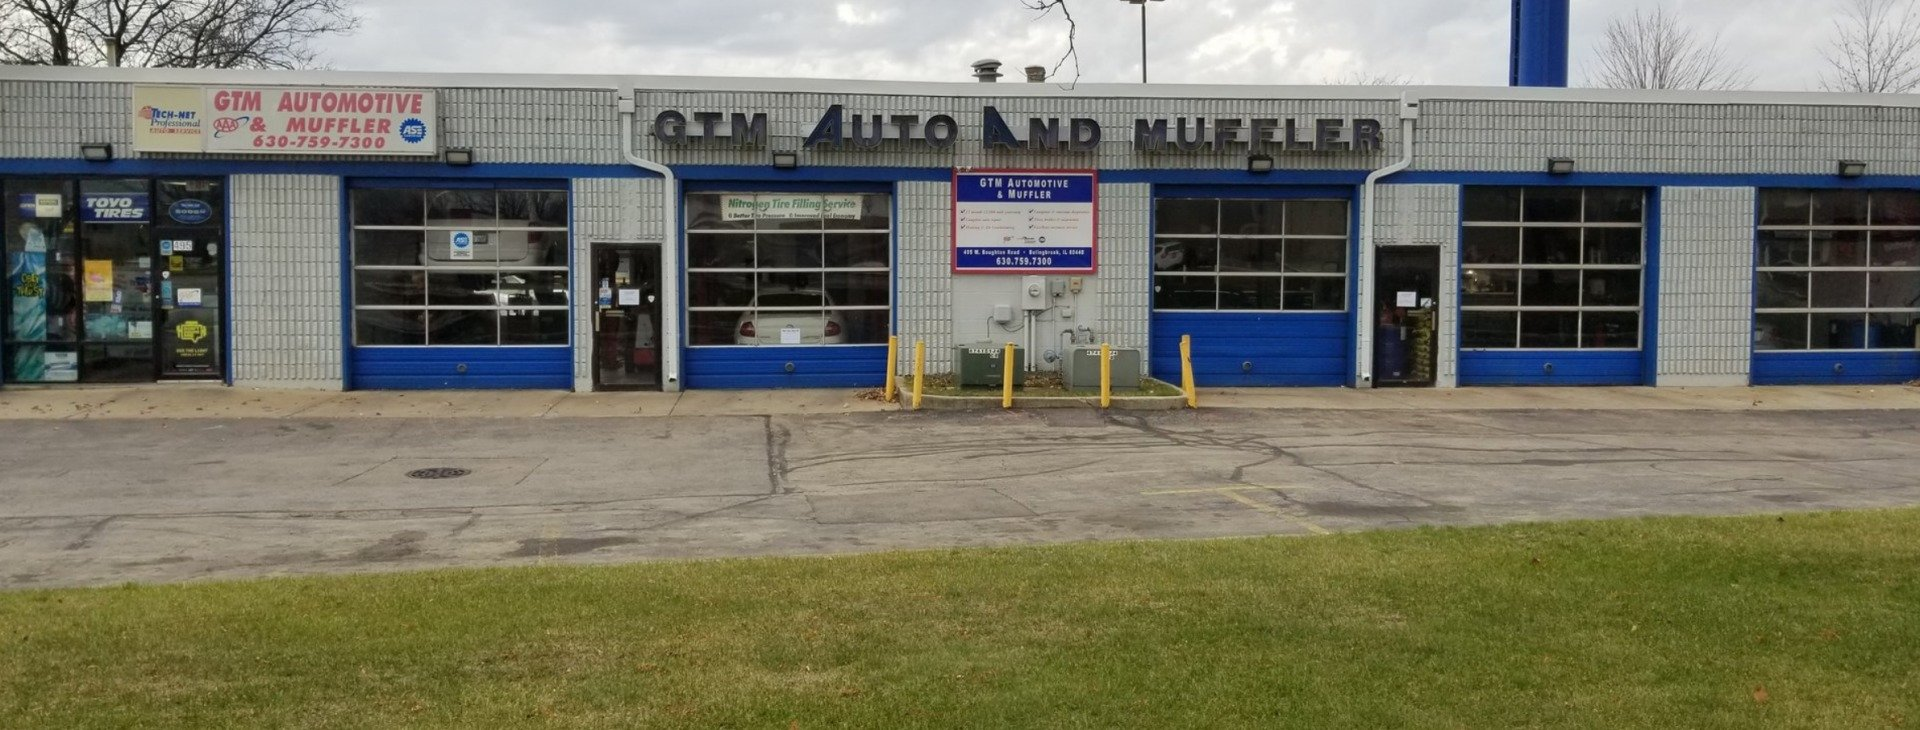 G T M Auto Repair Shop Is Open Now Near Me In Bolingbrook Il